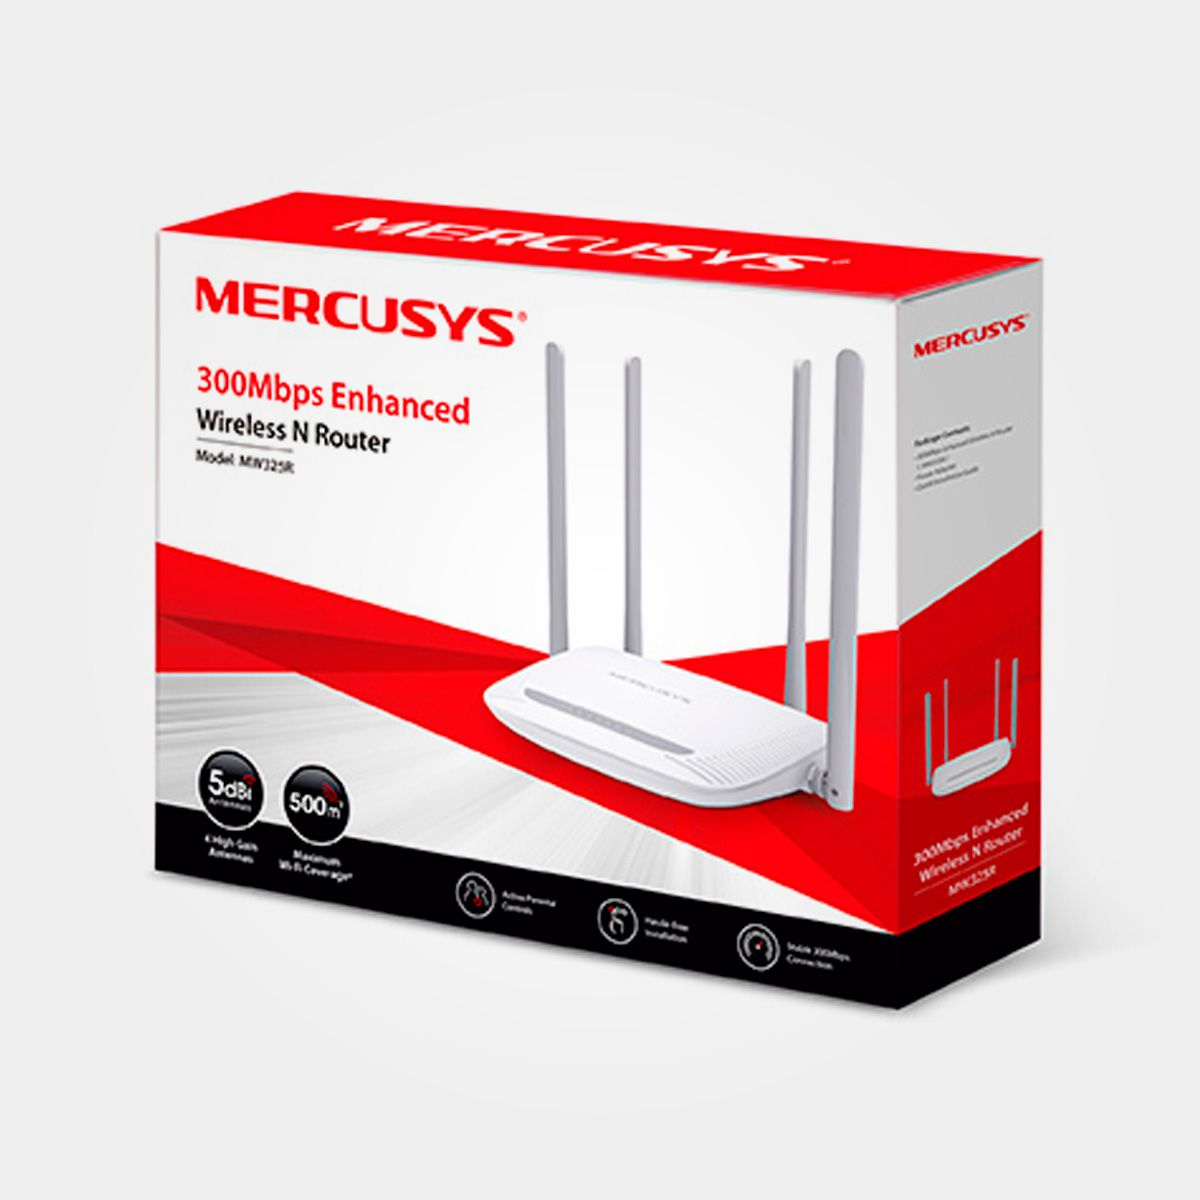 ROTEADOR WIRELESS N 300MBPS MW325R MERCUSYS